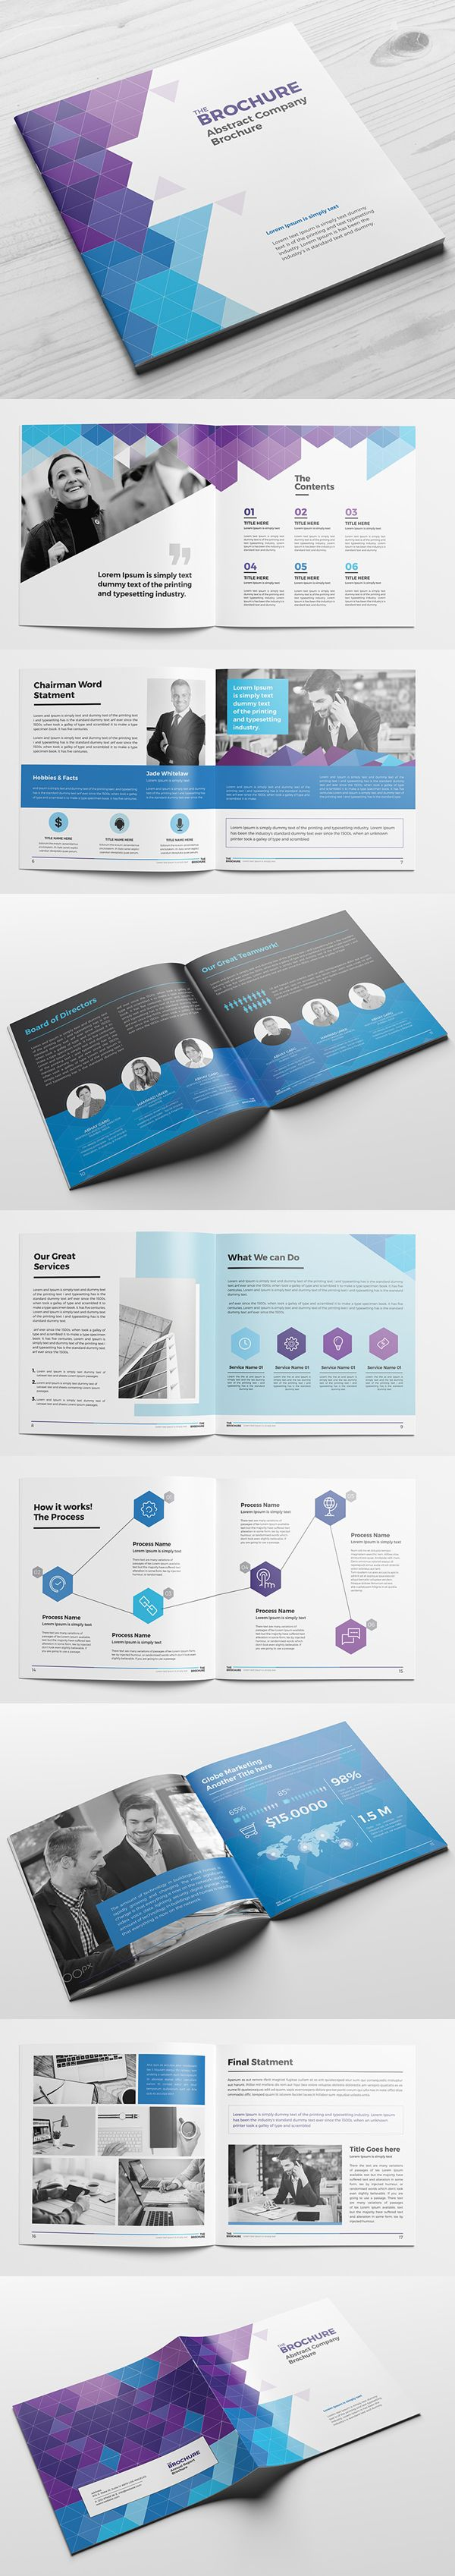 Creative Abstract Square Brochure Template #annualreport #booklet #brochuredesign #brochuretemplates #fashioncatalog #portfolio